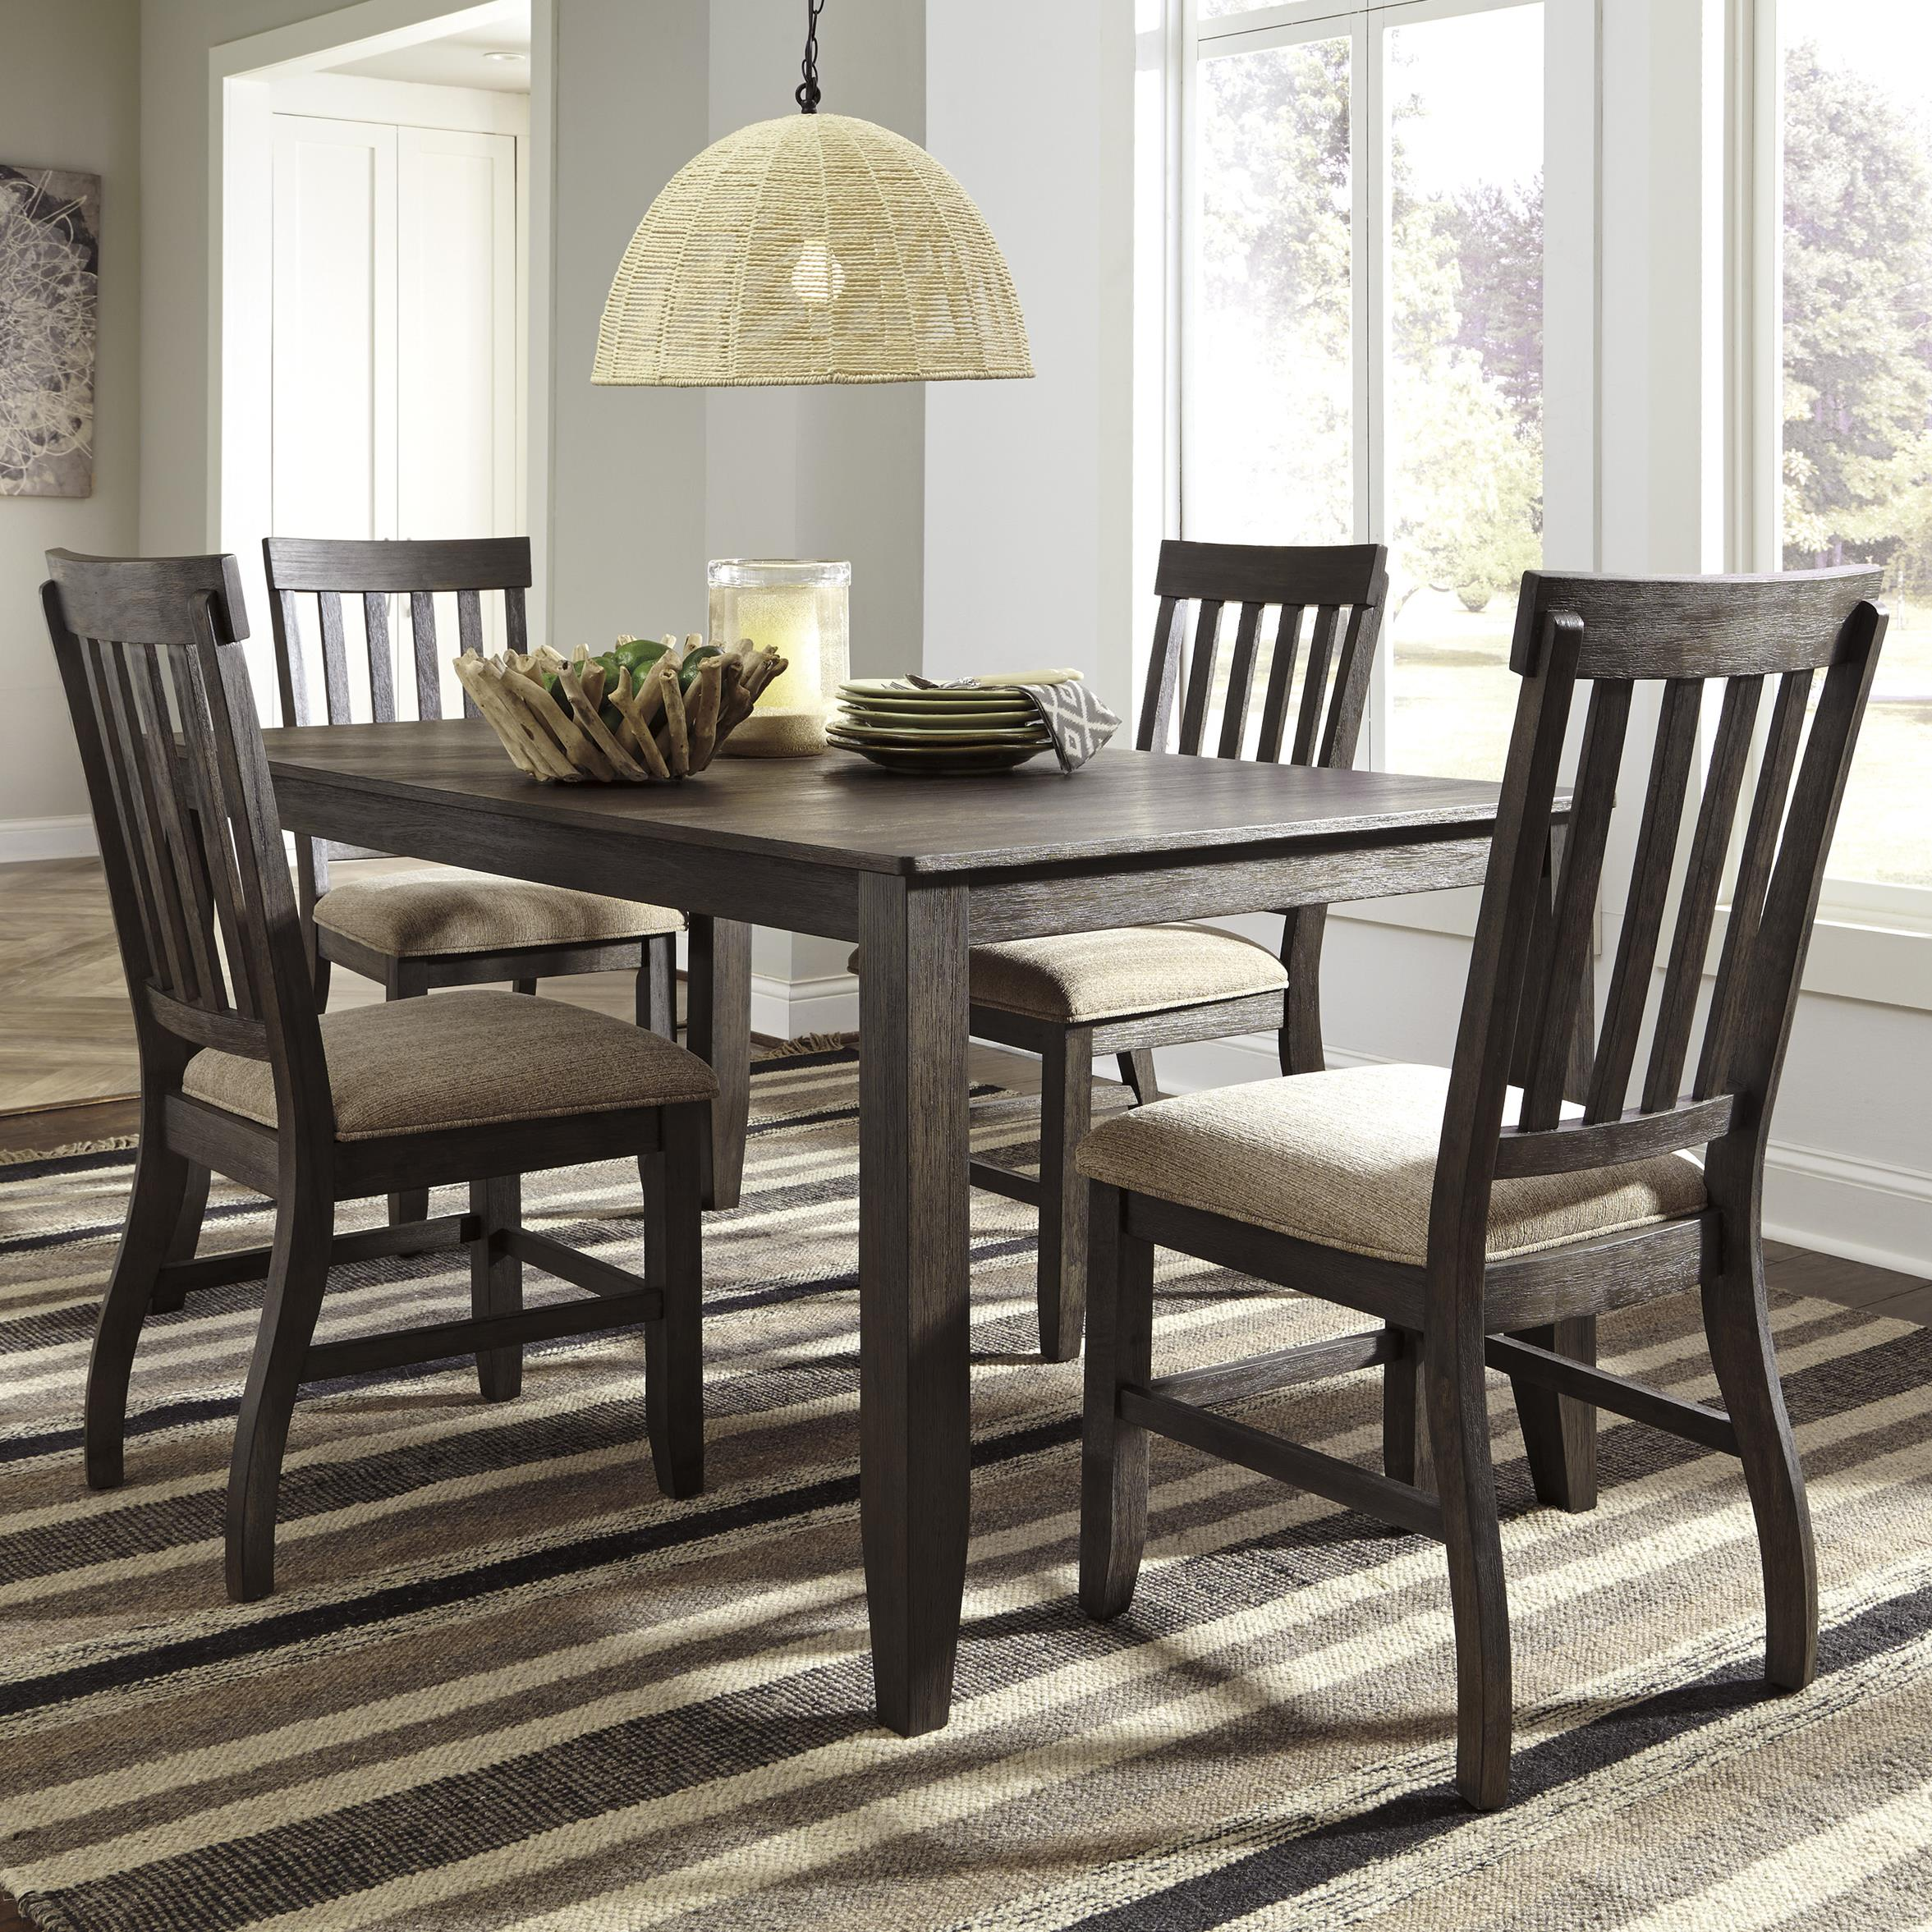 5 Piece Dining Room Sets Amazon Com: 5-Piece Rectangular Dining Table Set By Signature Design